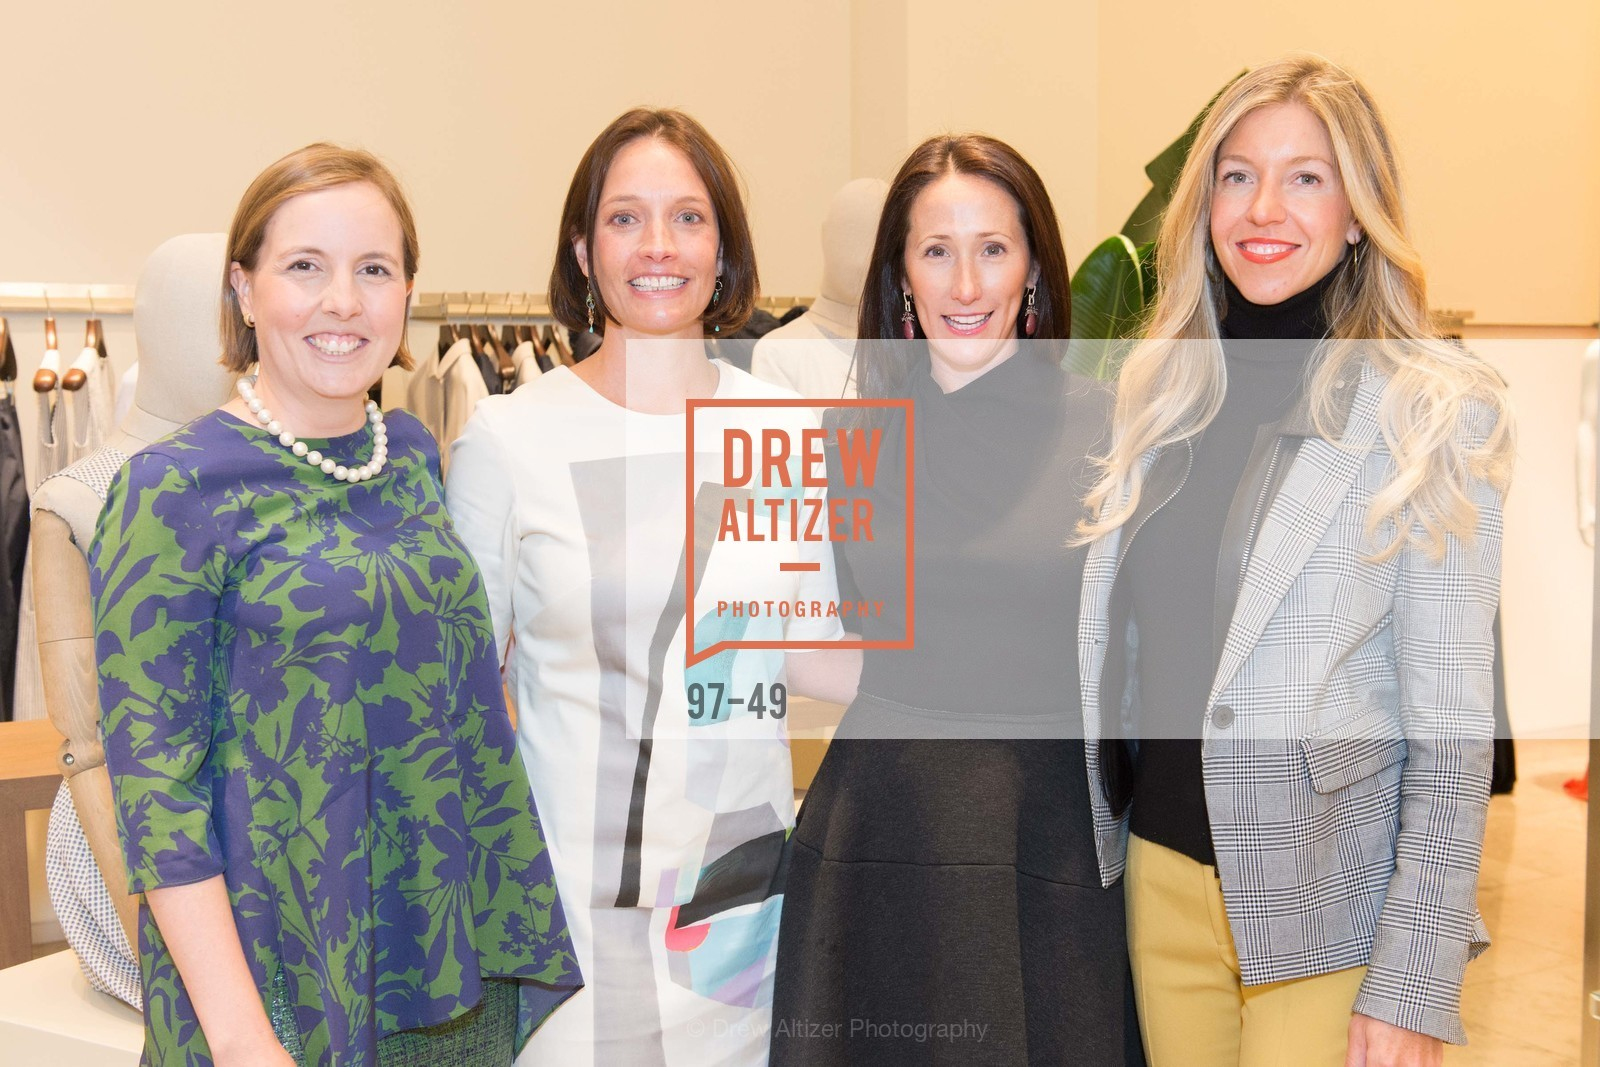 Katie Rothschild, Betsy McDermott, Kathryn Freeman, Jane Gruber, Luncheon Hosted by Max Mara, Max Mara. 175 Post St, San Francisco, CA 94108, April 21st, 2015,Drew Altizer, Drew Altizer Photography, full-service event agency, private events, San Francisco photographer, photographer California